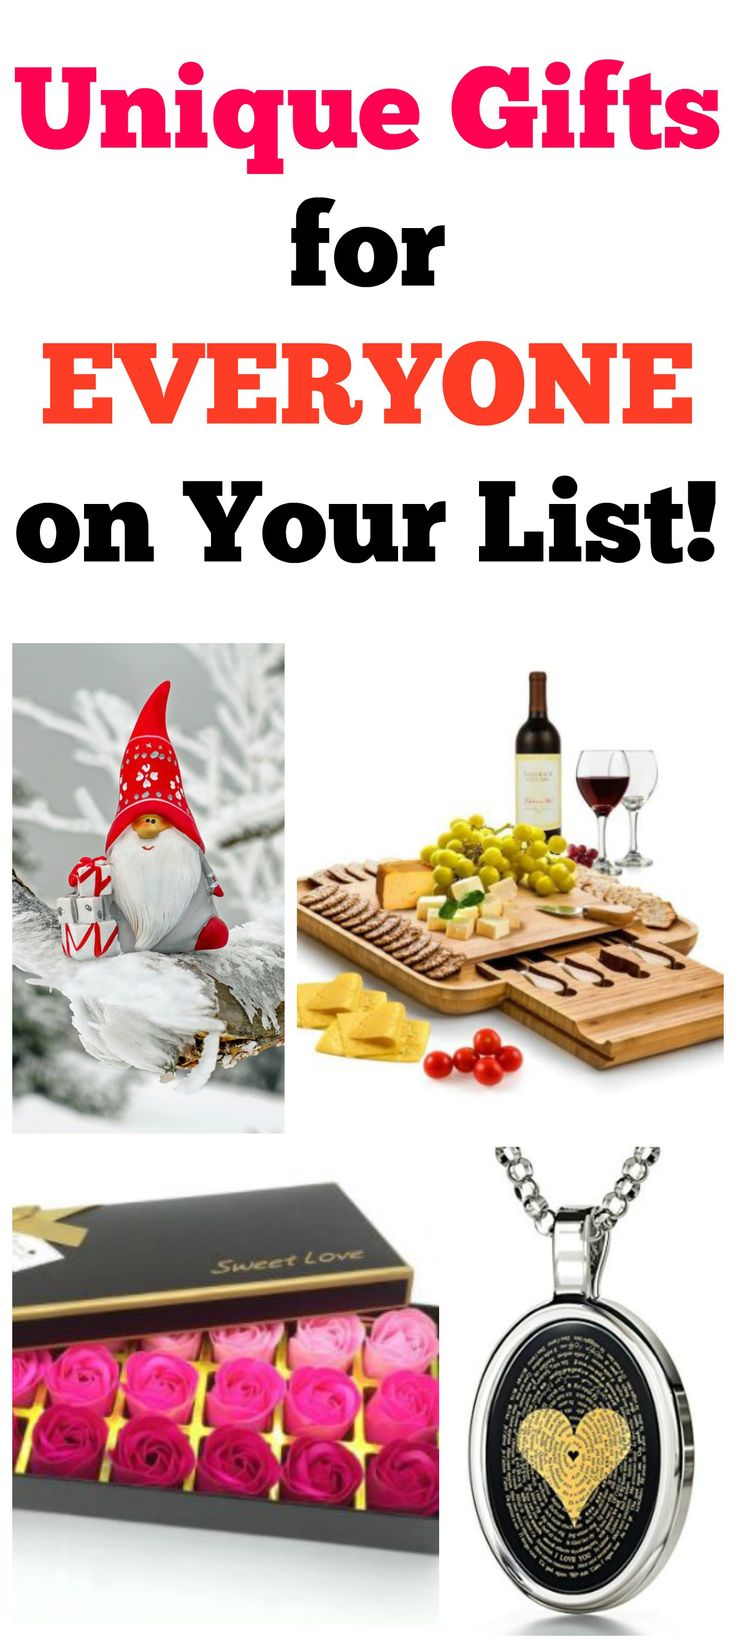 If unique gifts are what you're after, you've come to the right place! Check out the list for great #gifts for everyone on your list! #christmas #christmasgifts